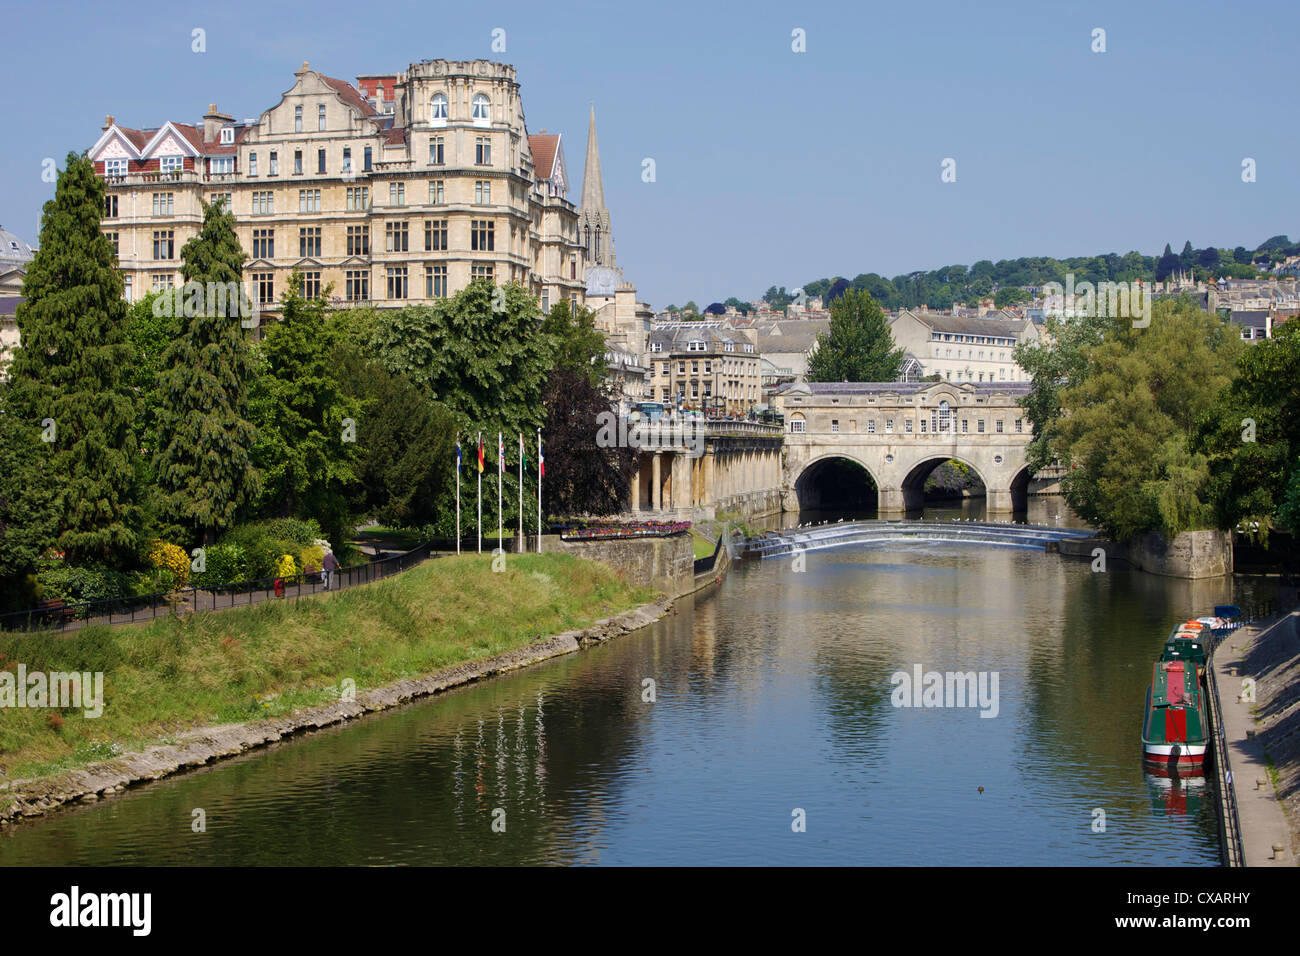 Pulteney Bridge et la rivière Avon, baignoire, UNESCO World Heritage Site, Avon, Angleterre, Royaume-Uni, Europe Photo Stock